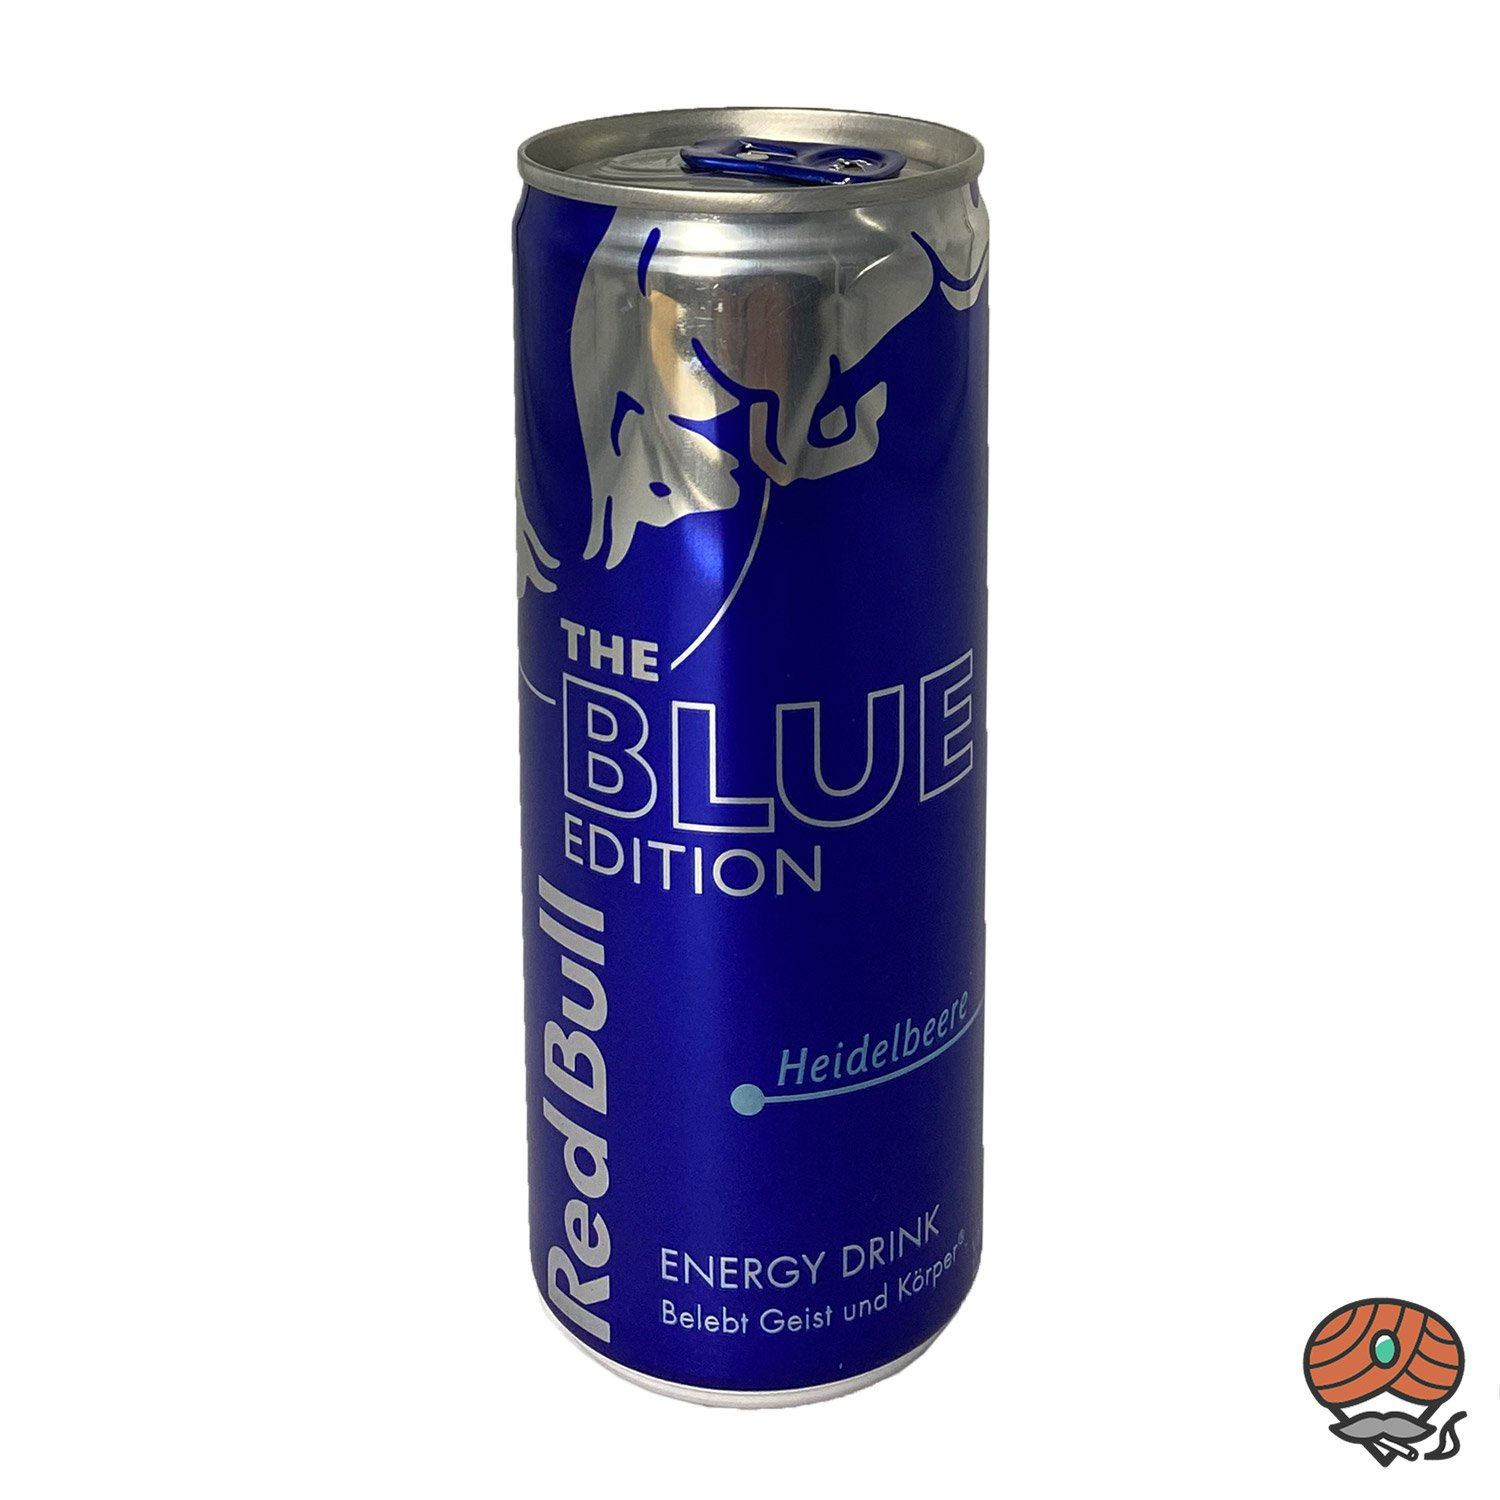 Red Bull Energy Drink THE BLUE EDITION, Heidelbeere, 250 ml Dose